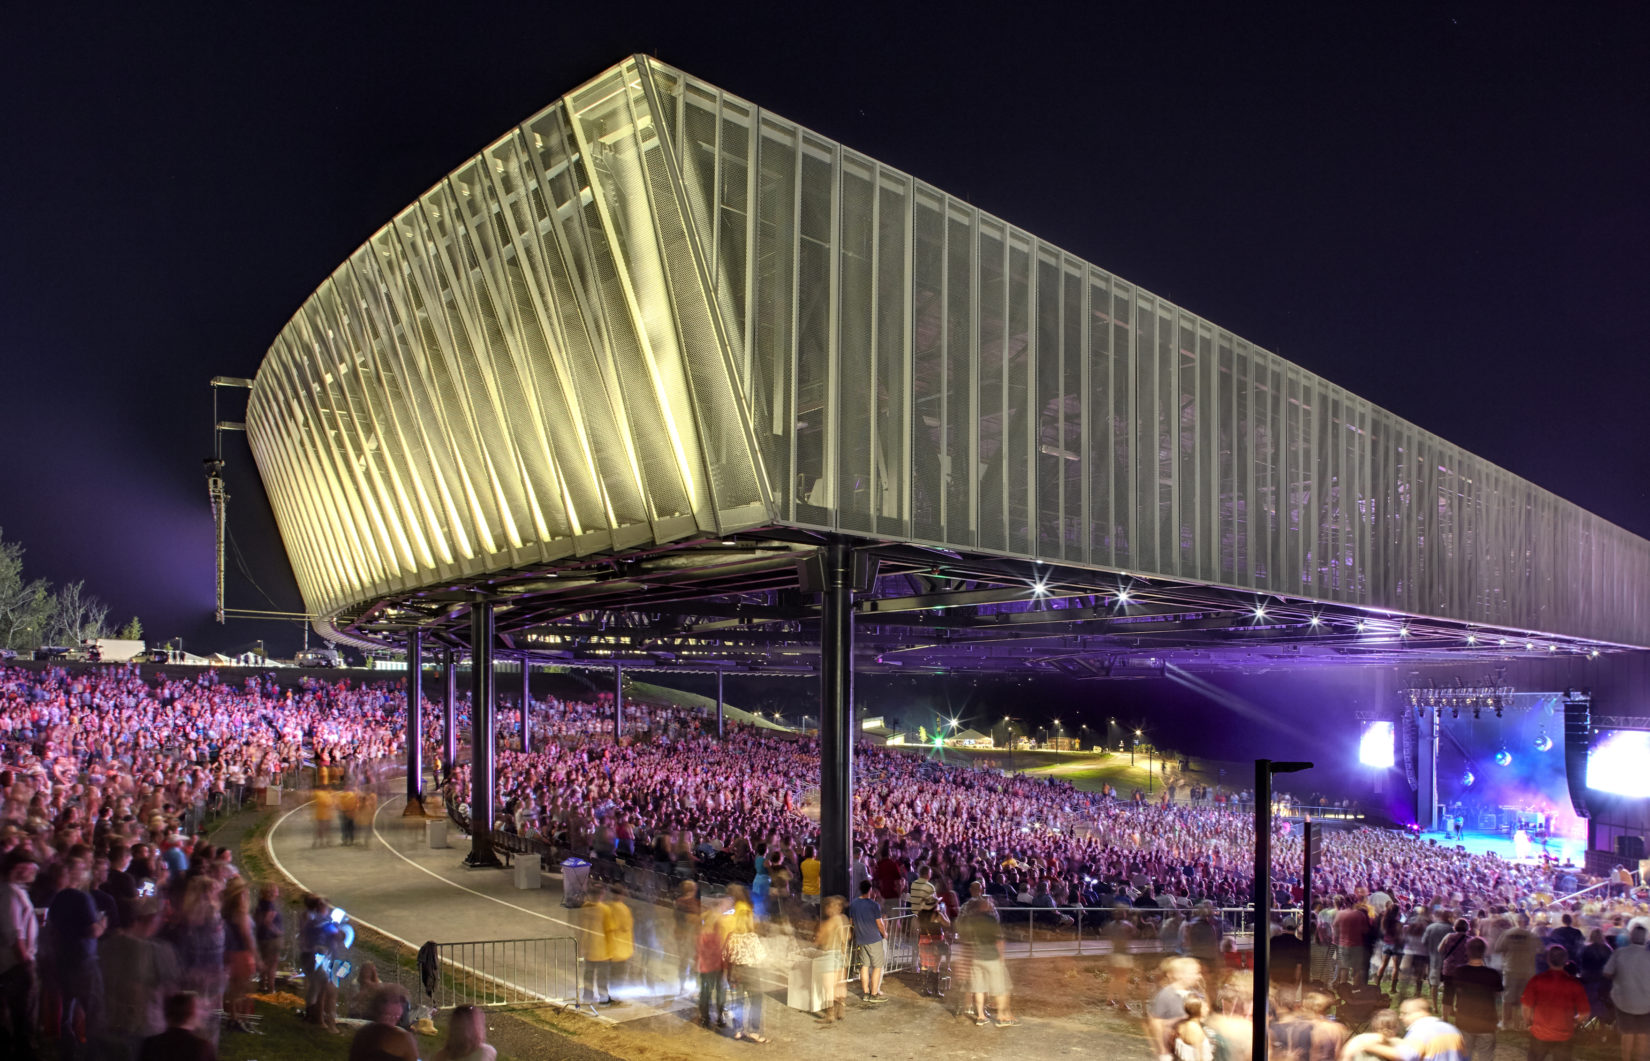 Outdoor concert photo of Lakeview Amphitheatre.